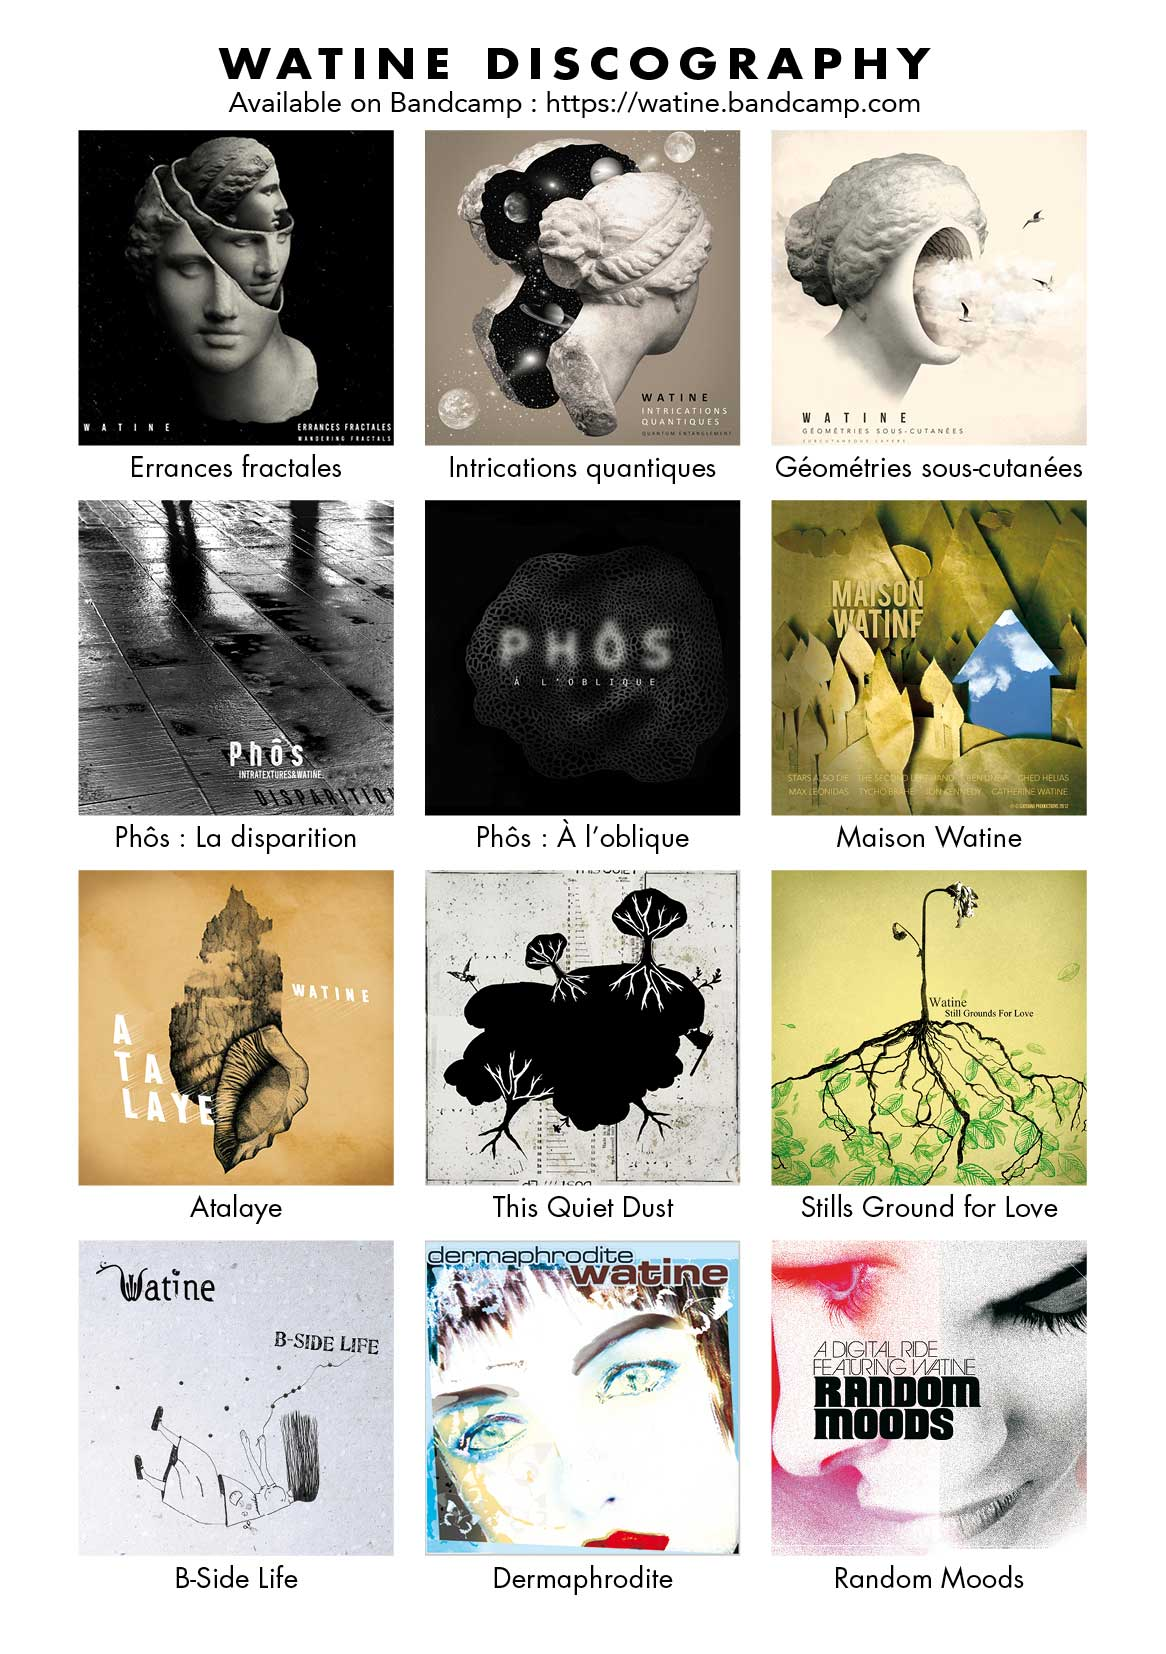 Watine discography